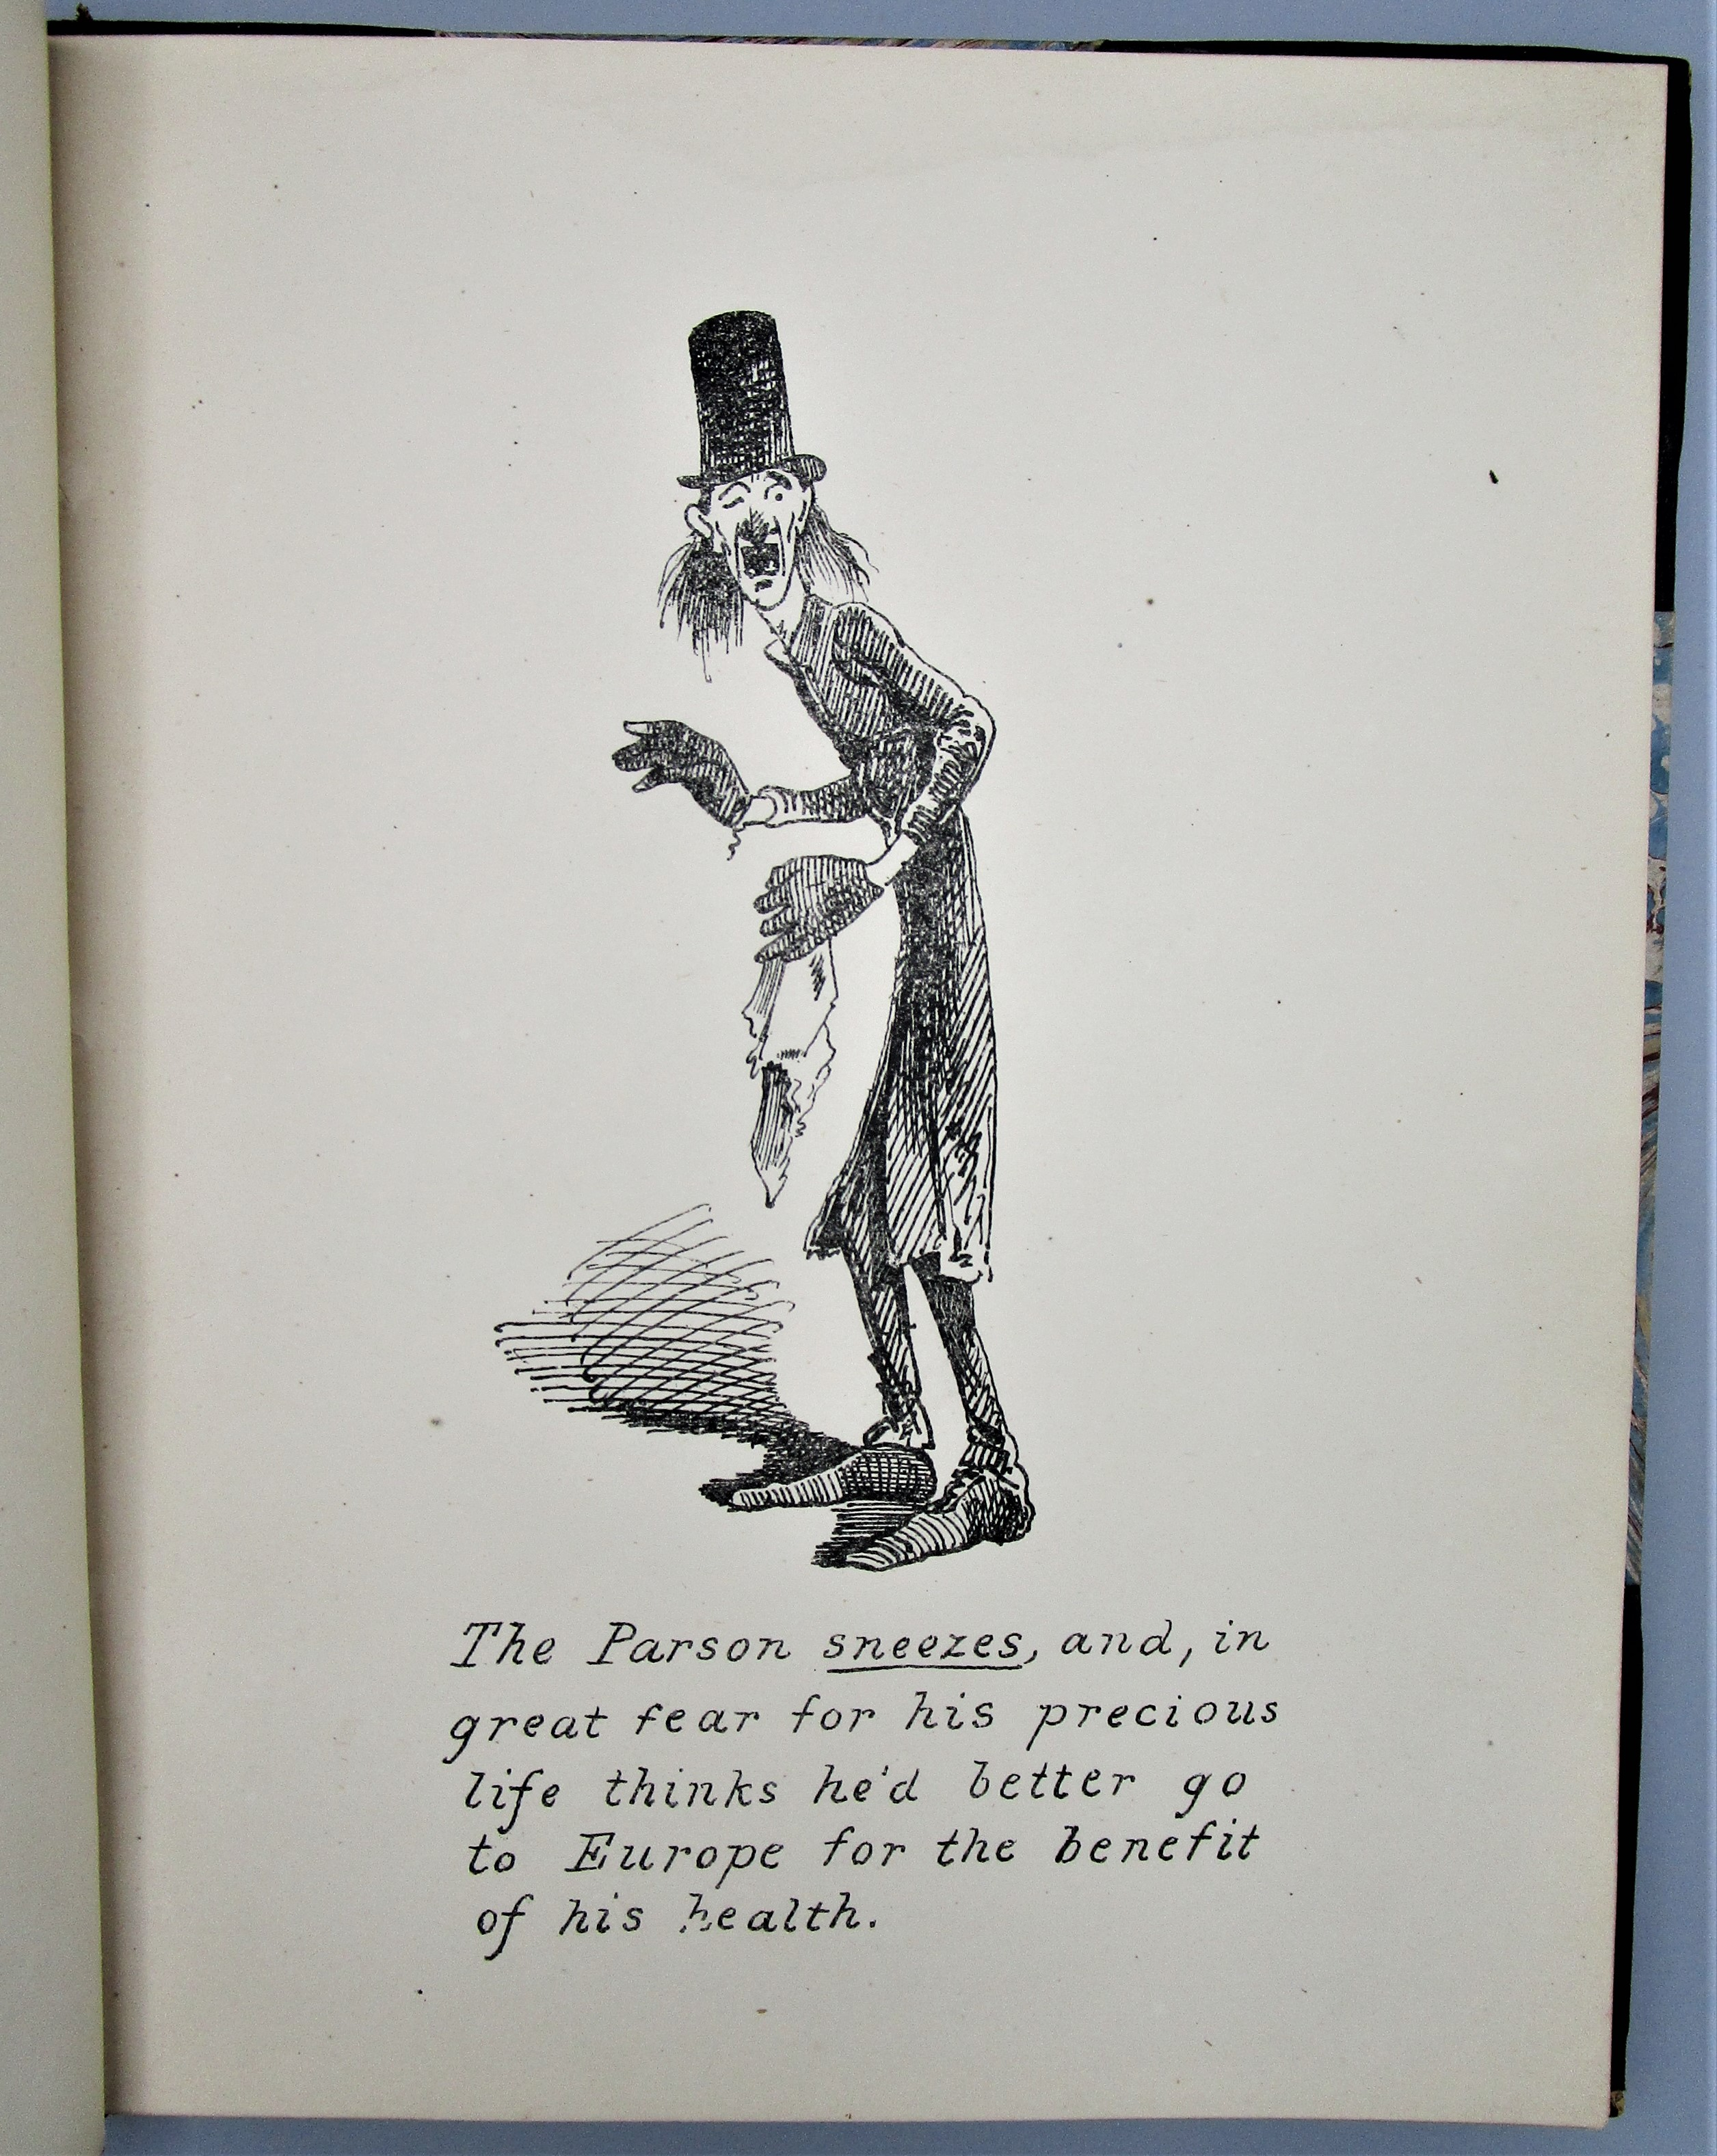 THE REVEREND MR SOURBALL'S EUROPEAN TOUR, by Horace Cope - 1867 [1st Ed]